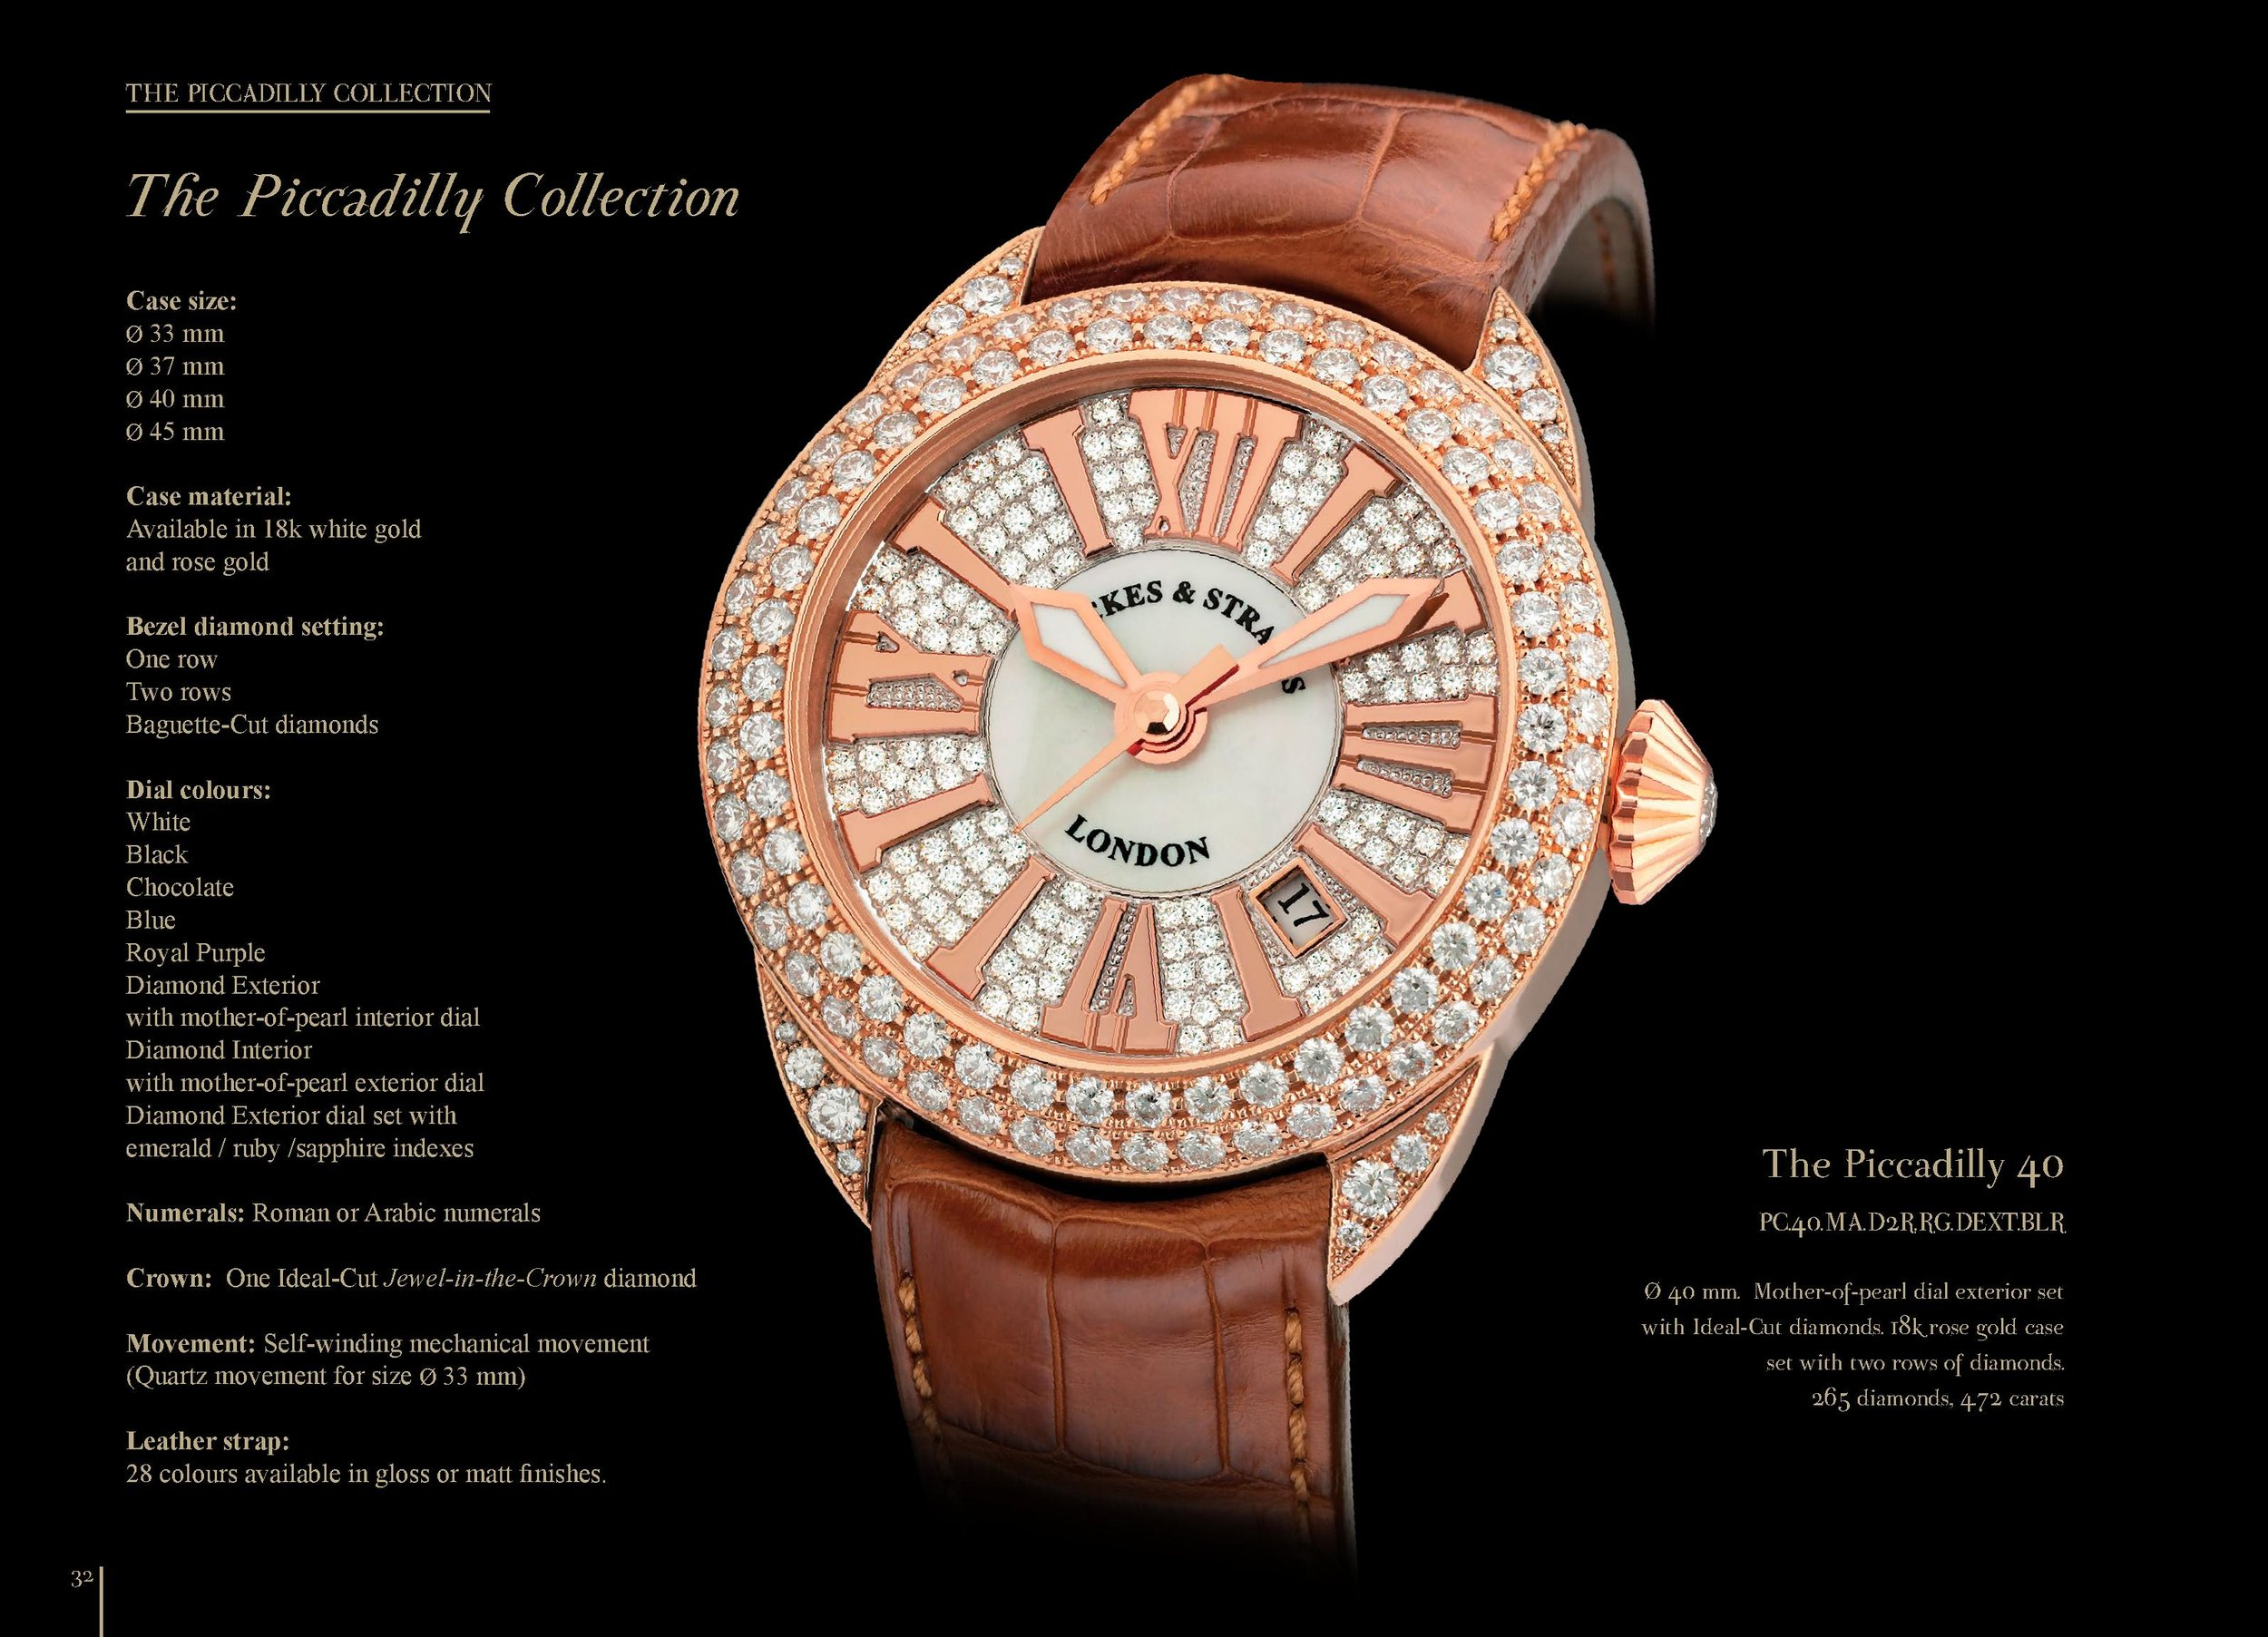 Piccadilly 40 watch